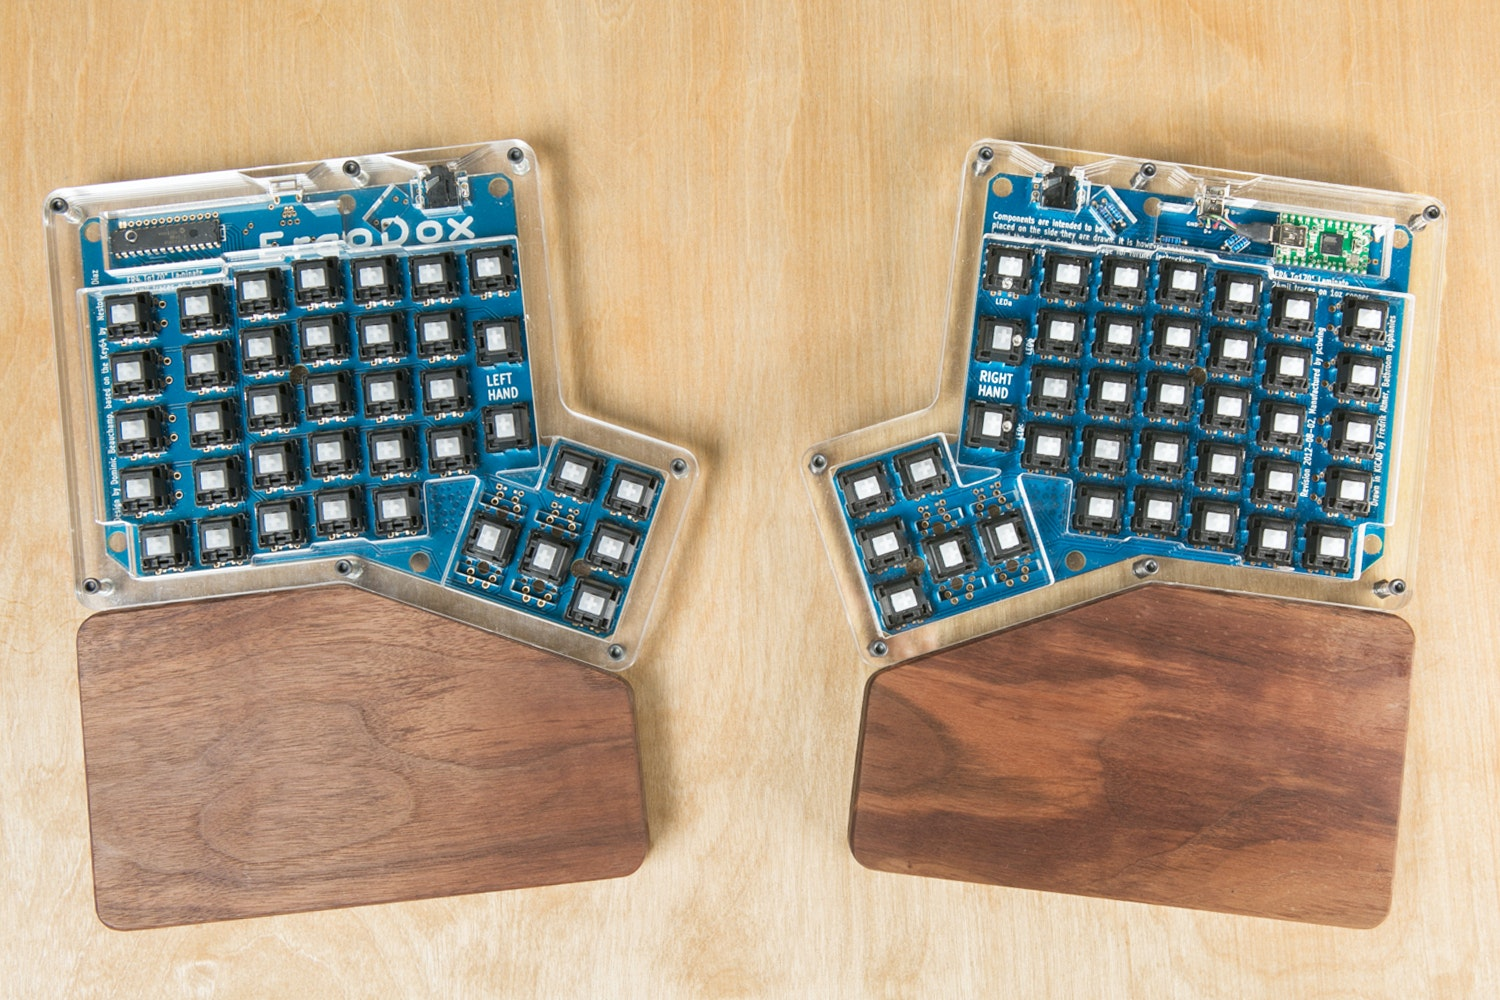 Royal Glam Ergodox Wood Wrist Rest